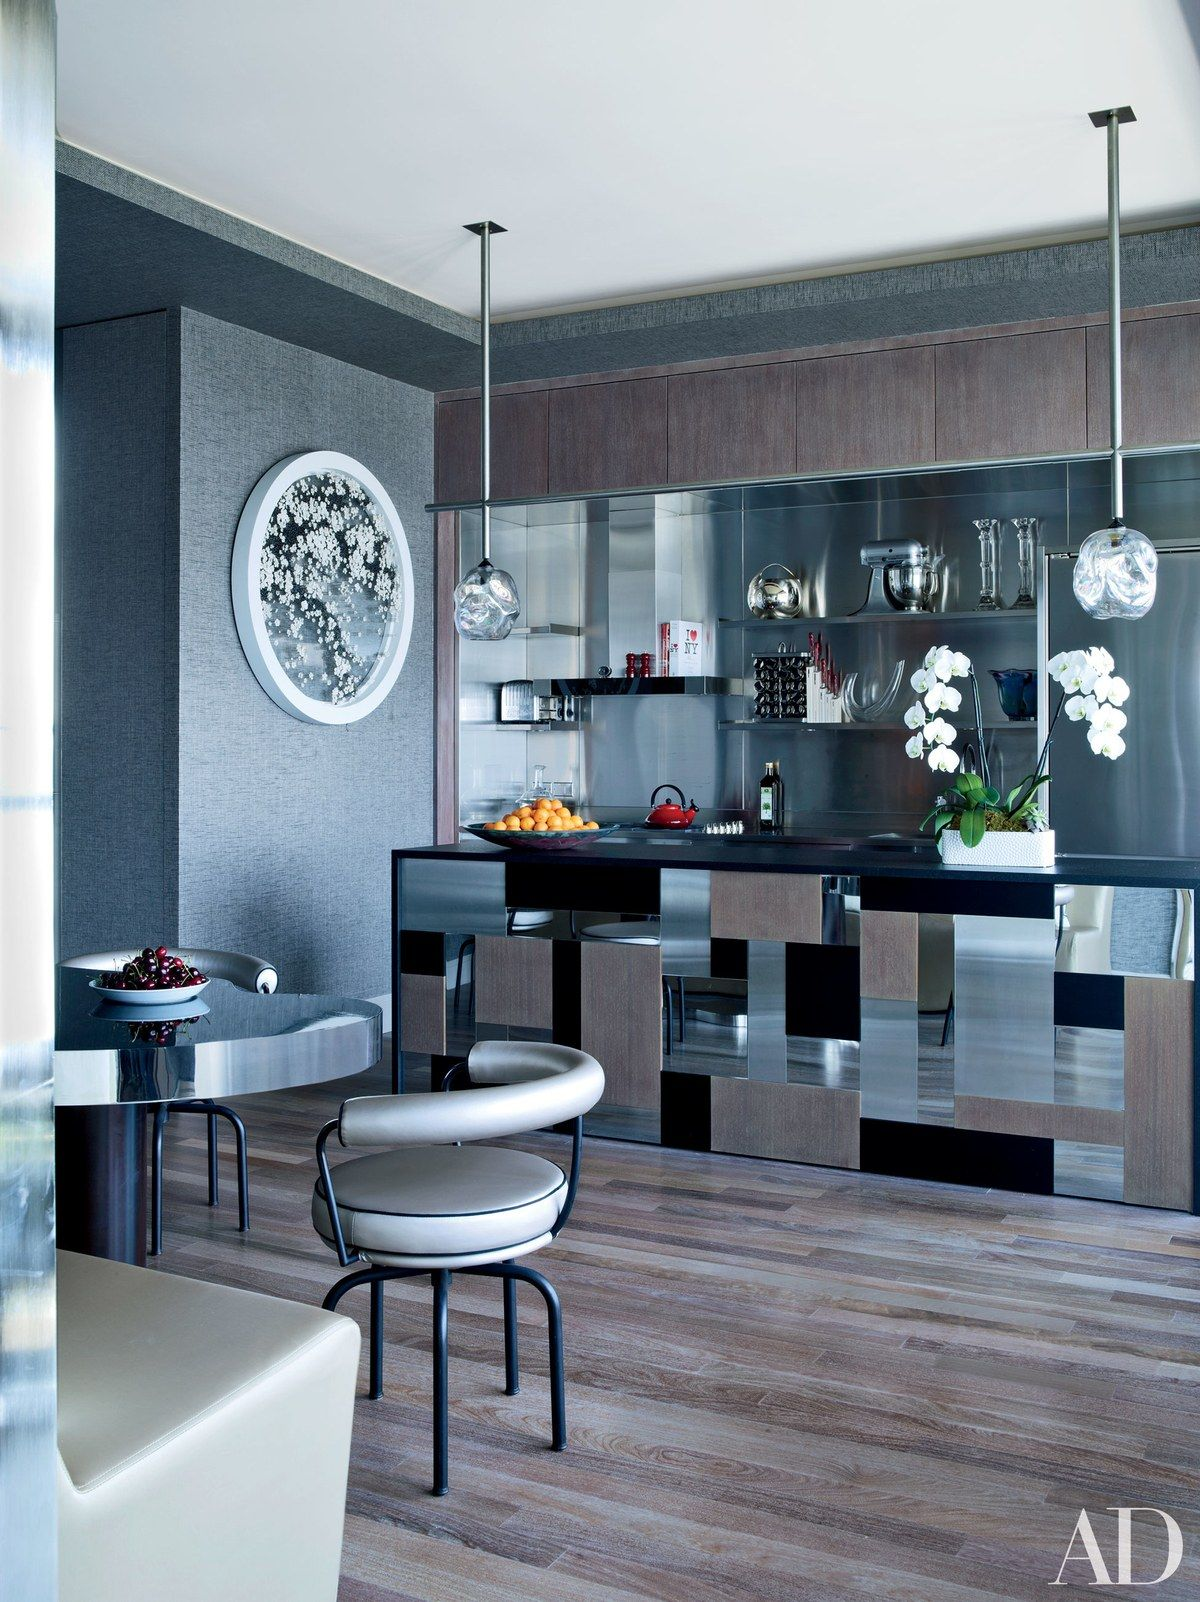 The symphony of reflective surfaces in the kitchen includes the ...